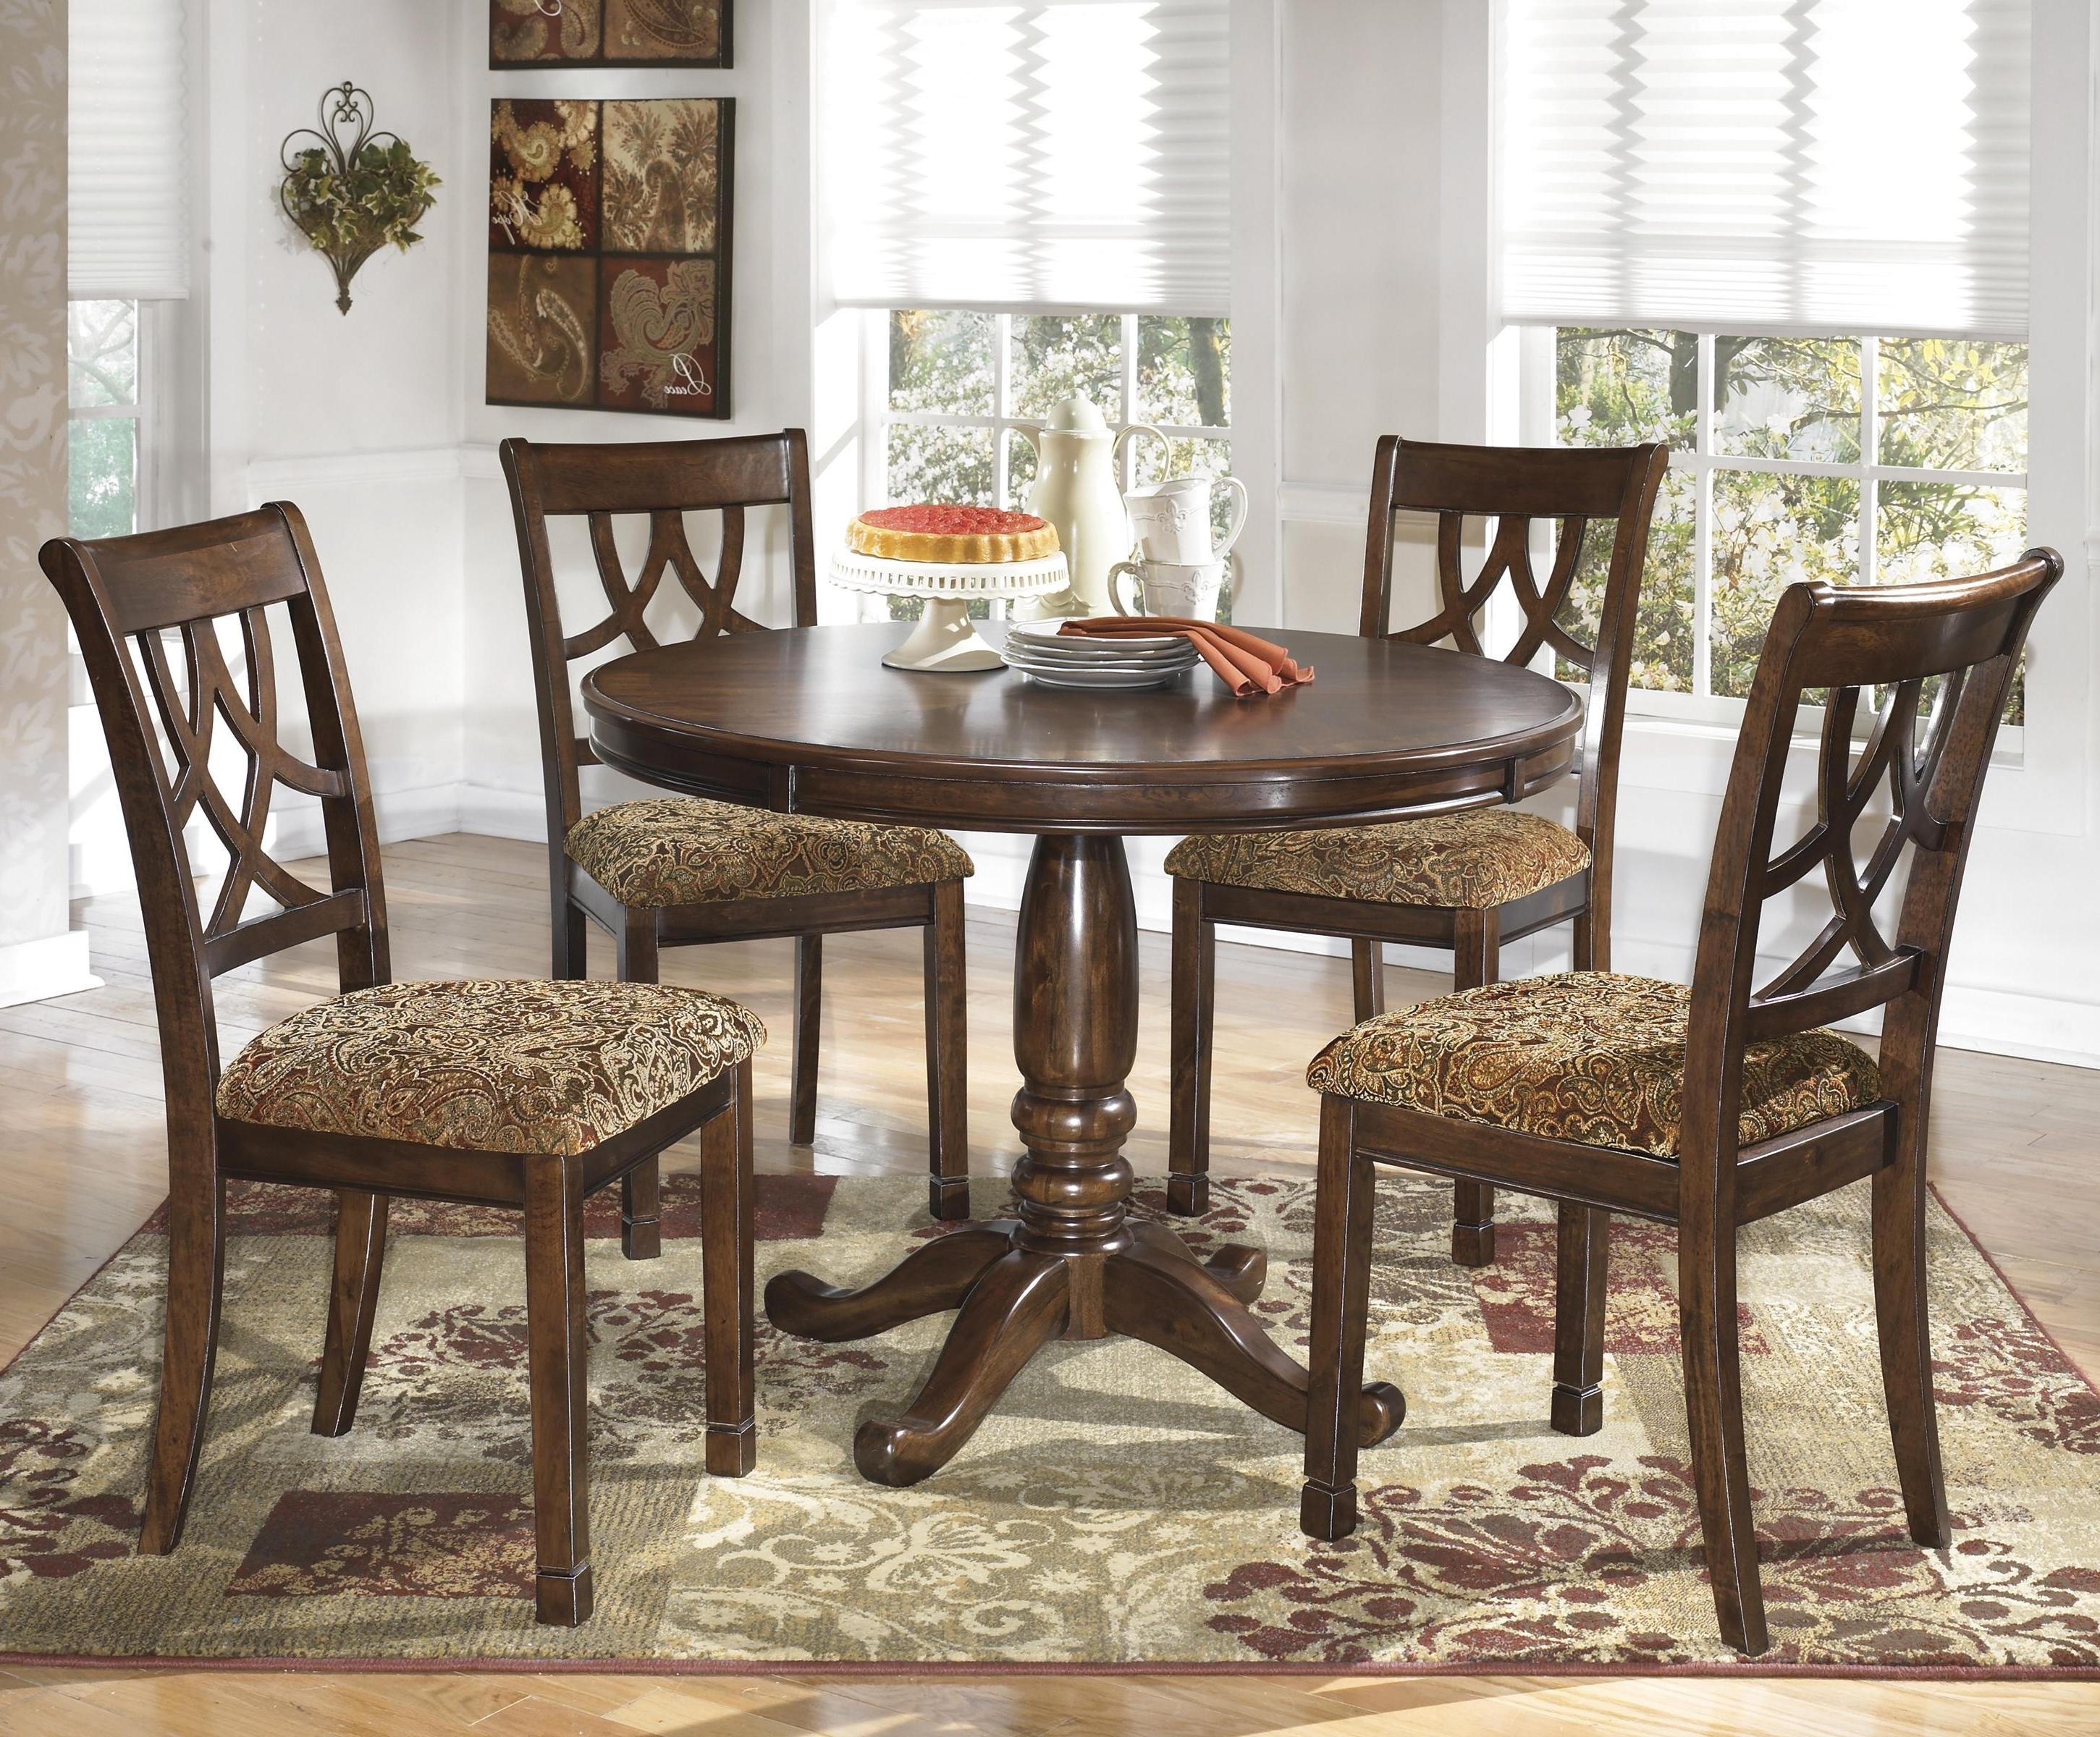 Signature Designashley Lila 5 Piece Cherry Finish Round Dining With Regard To Best And Newest Dining Tables Sets (View 20 of 25)